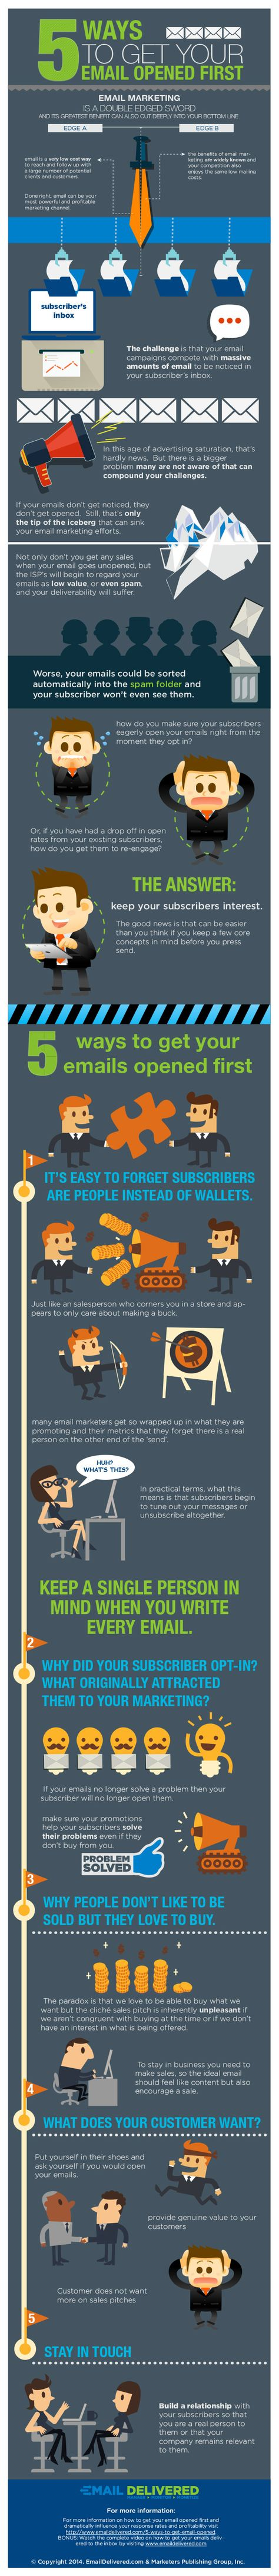 5 Ways to Make Sure Your Emails Get Opened (Infographic)